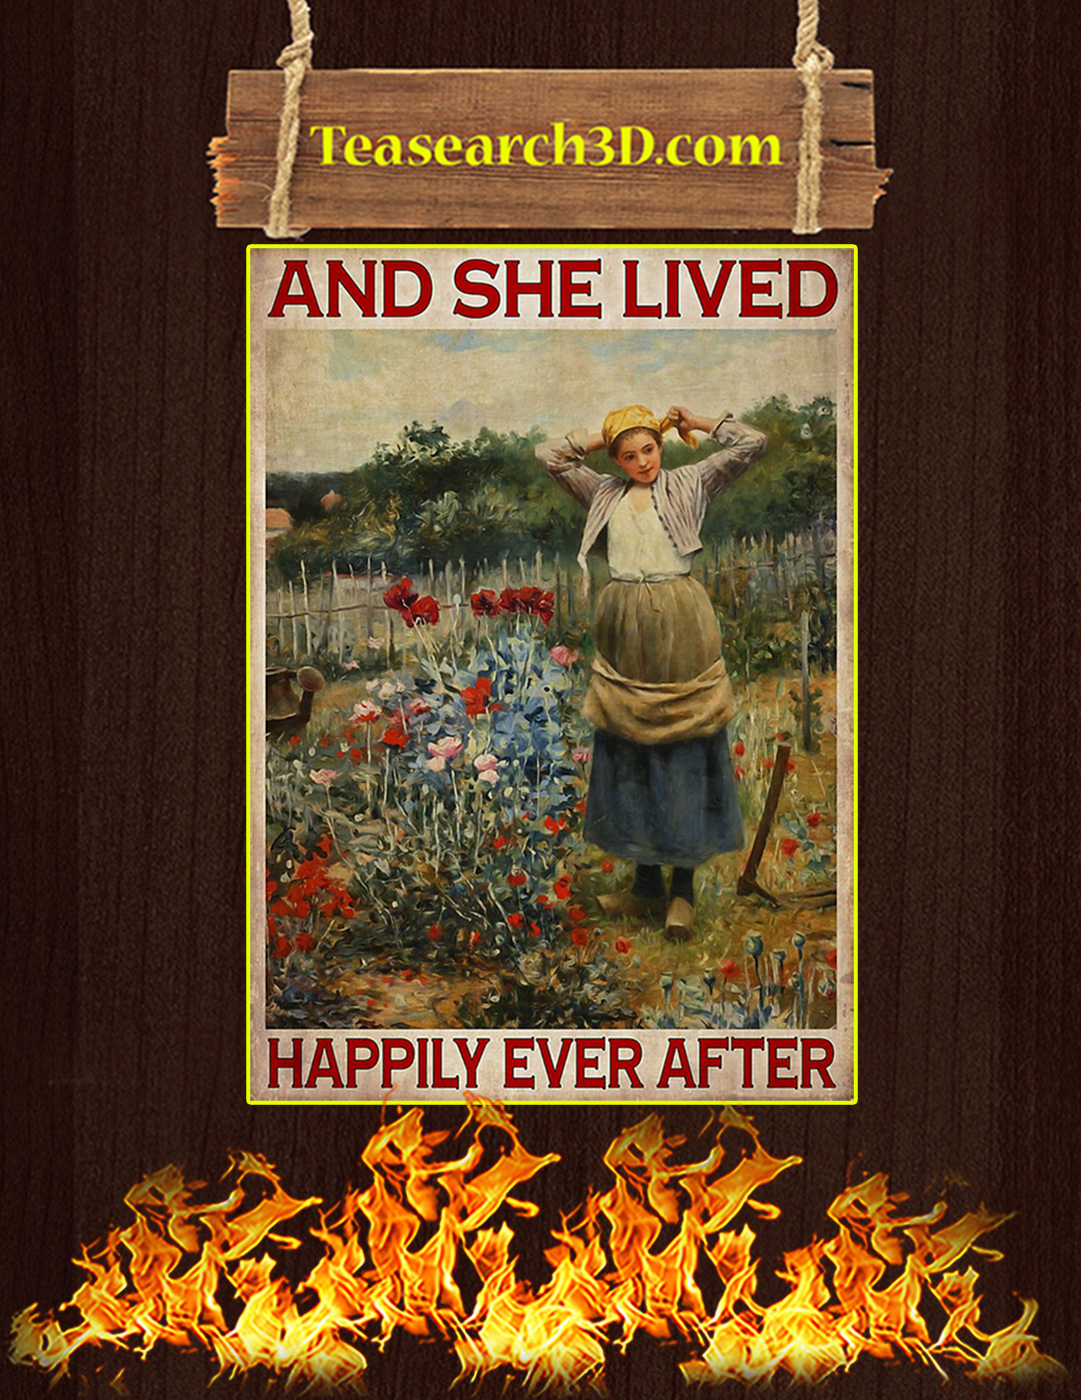 And she lived happily ever after gardening poster A2